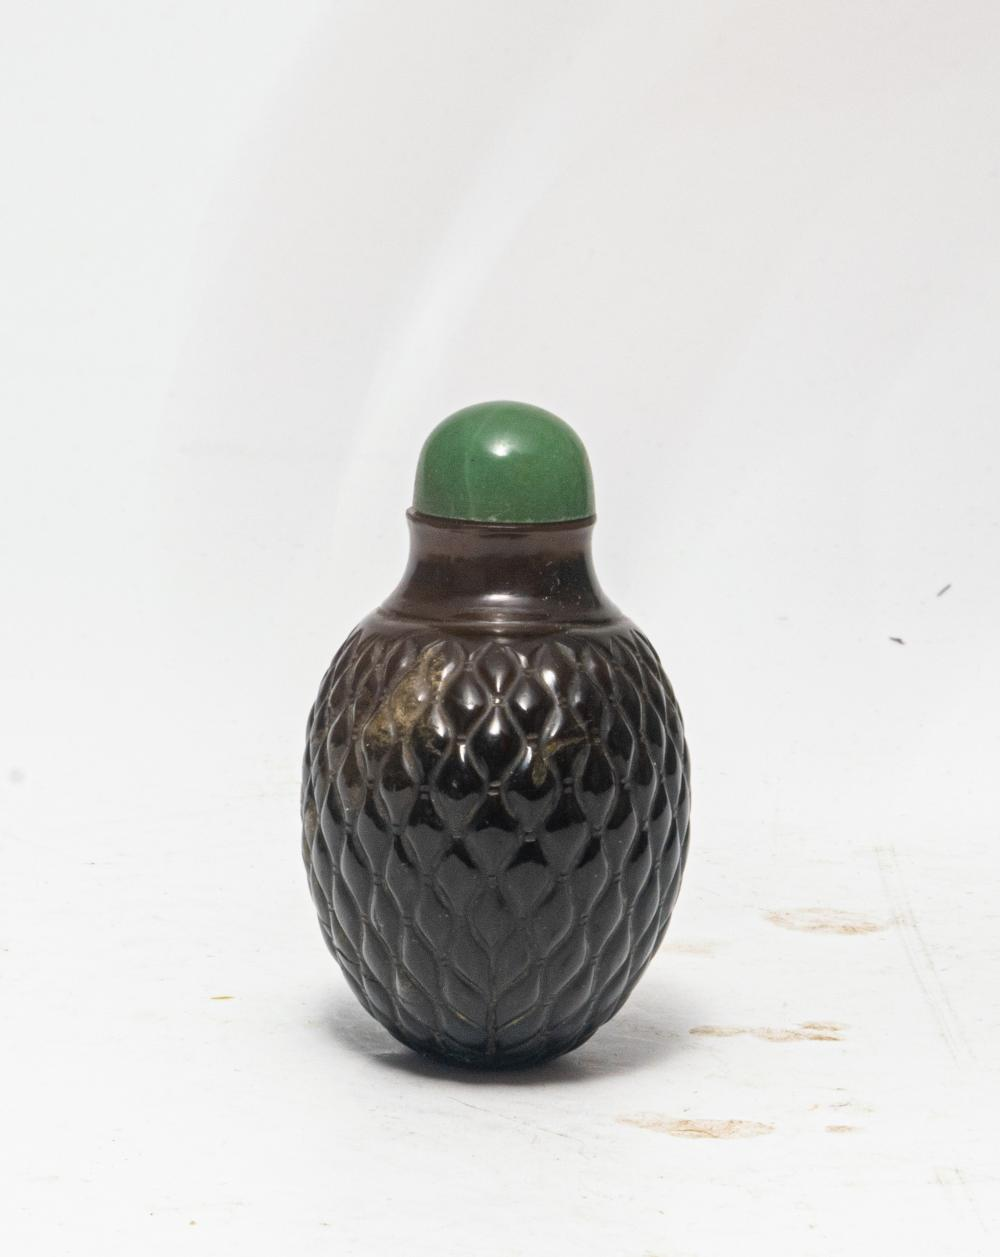 Lot 640: CHINESE AGATE CARVED SNUFF BOTTLE, 18TH CENTURY